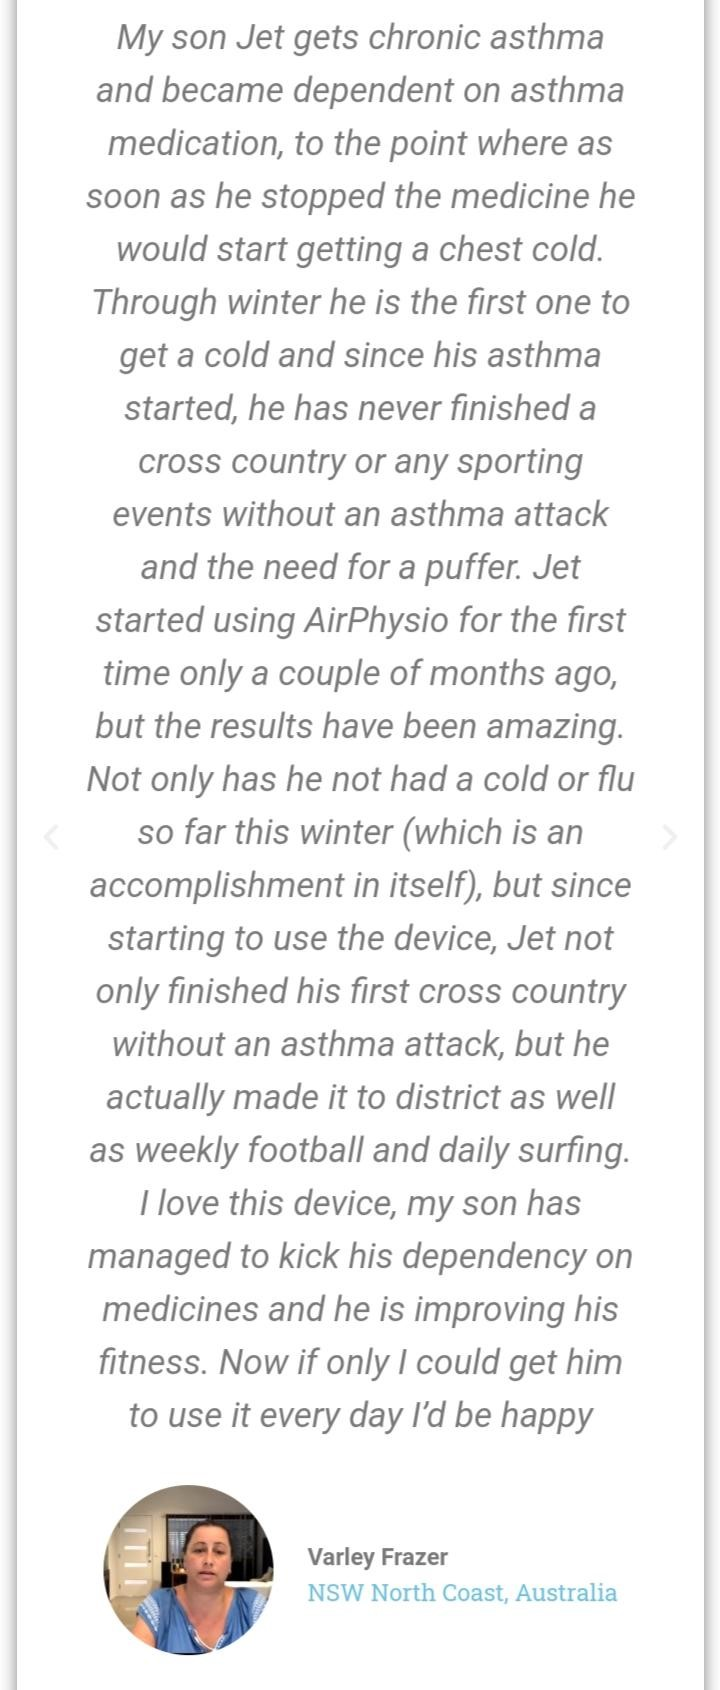 Customer Reviews On AirPhysio For Children 2